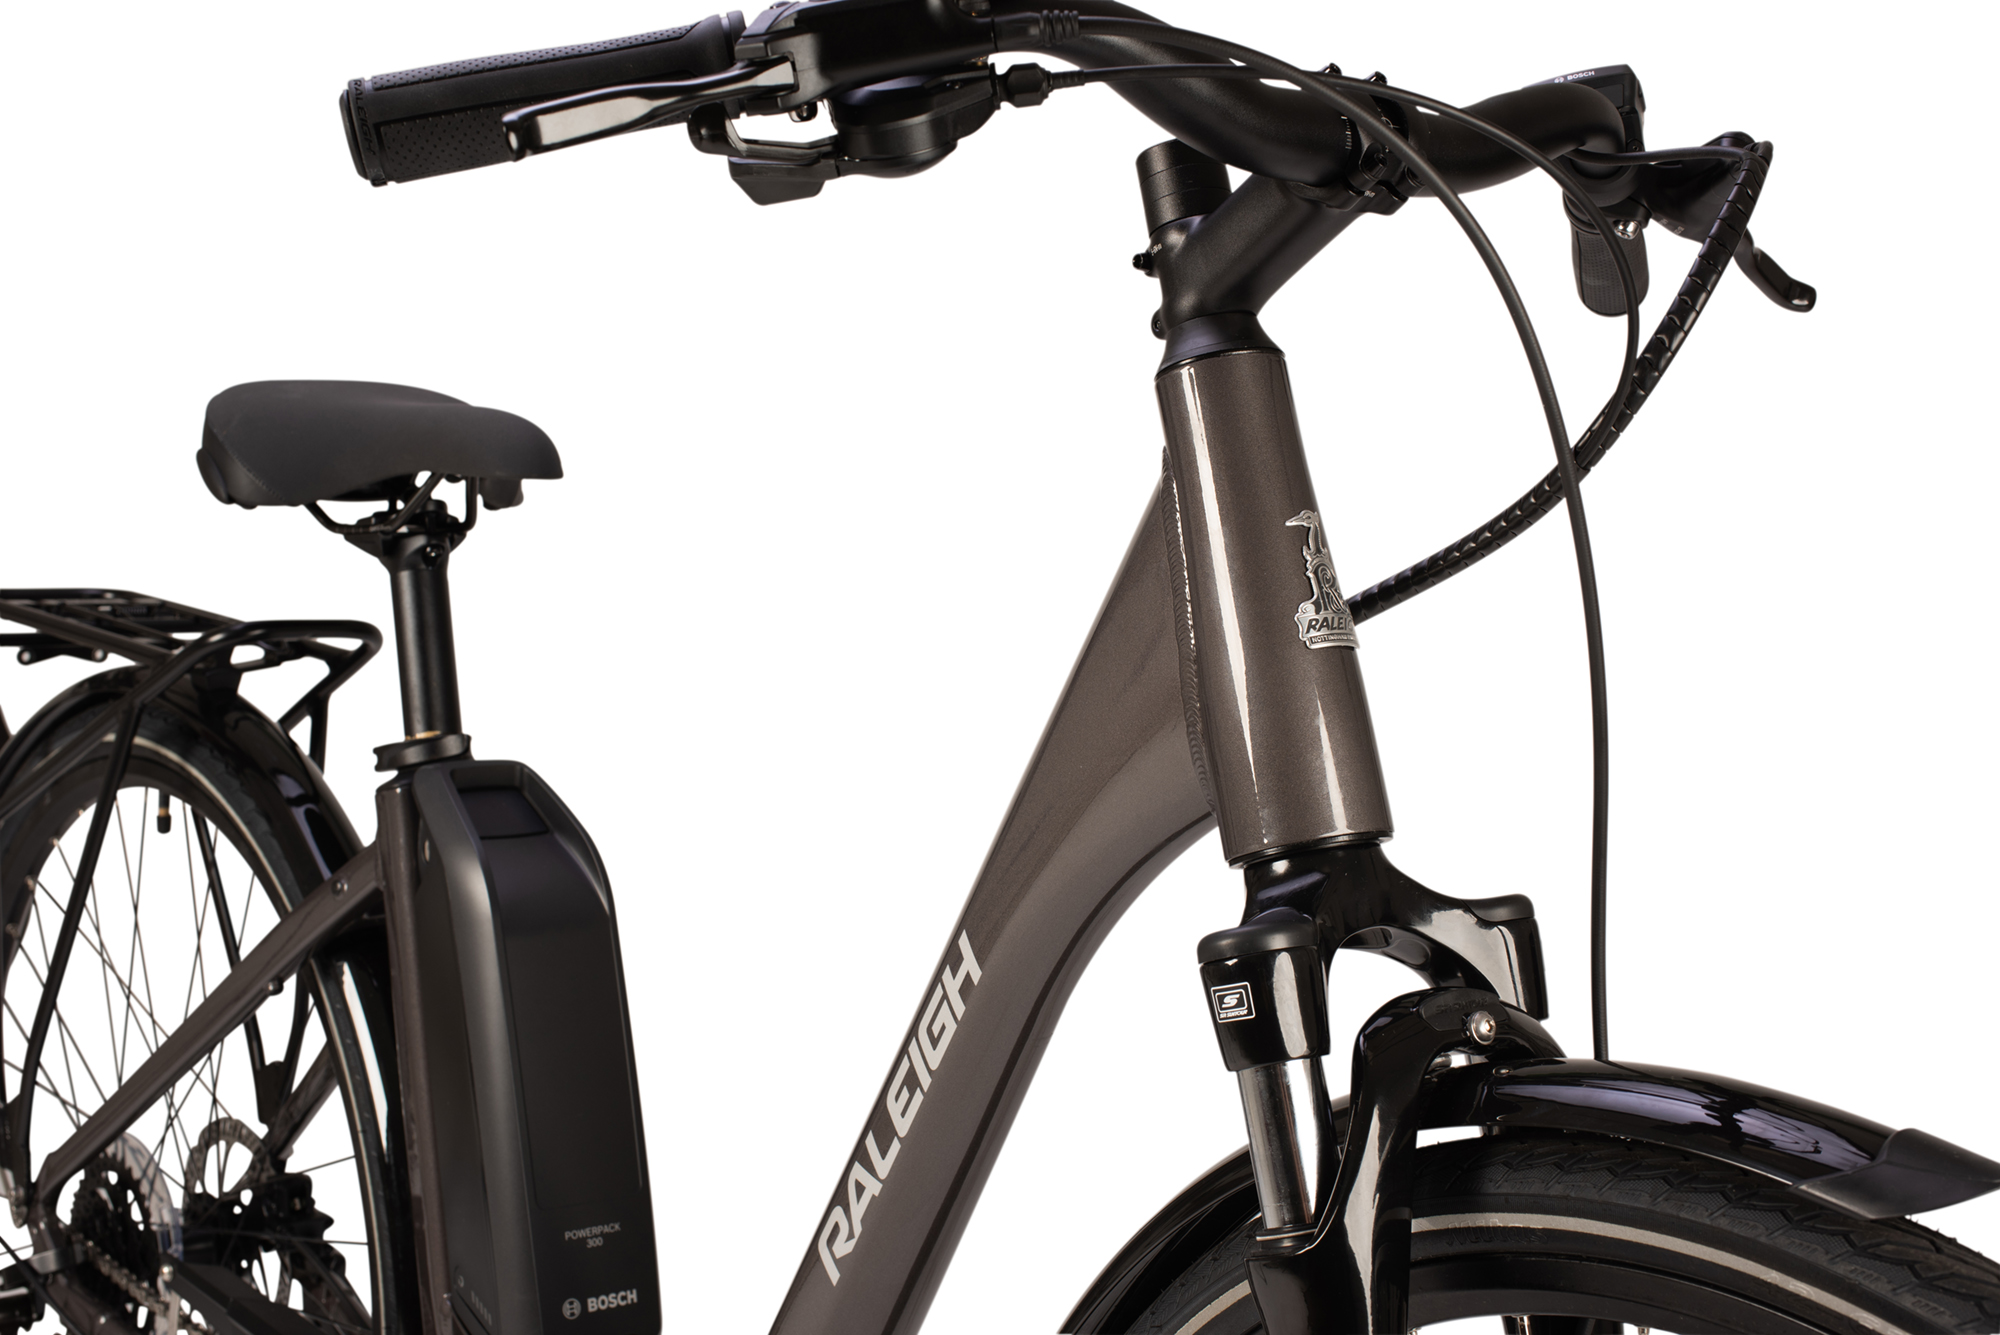 Front detail of the Raleigh Motus Low Step electric bike in grey colour